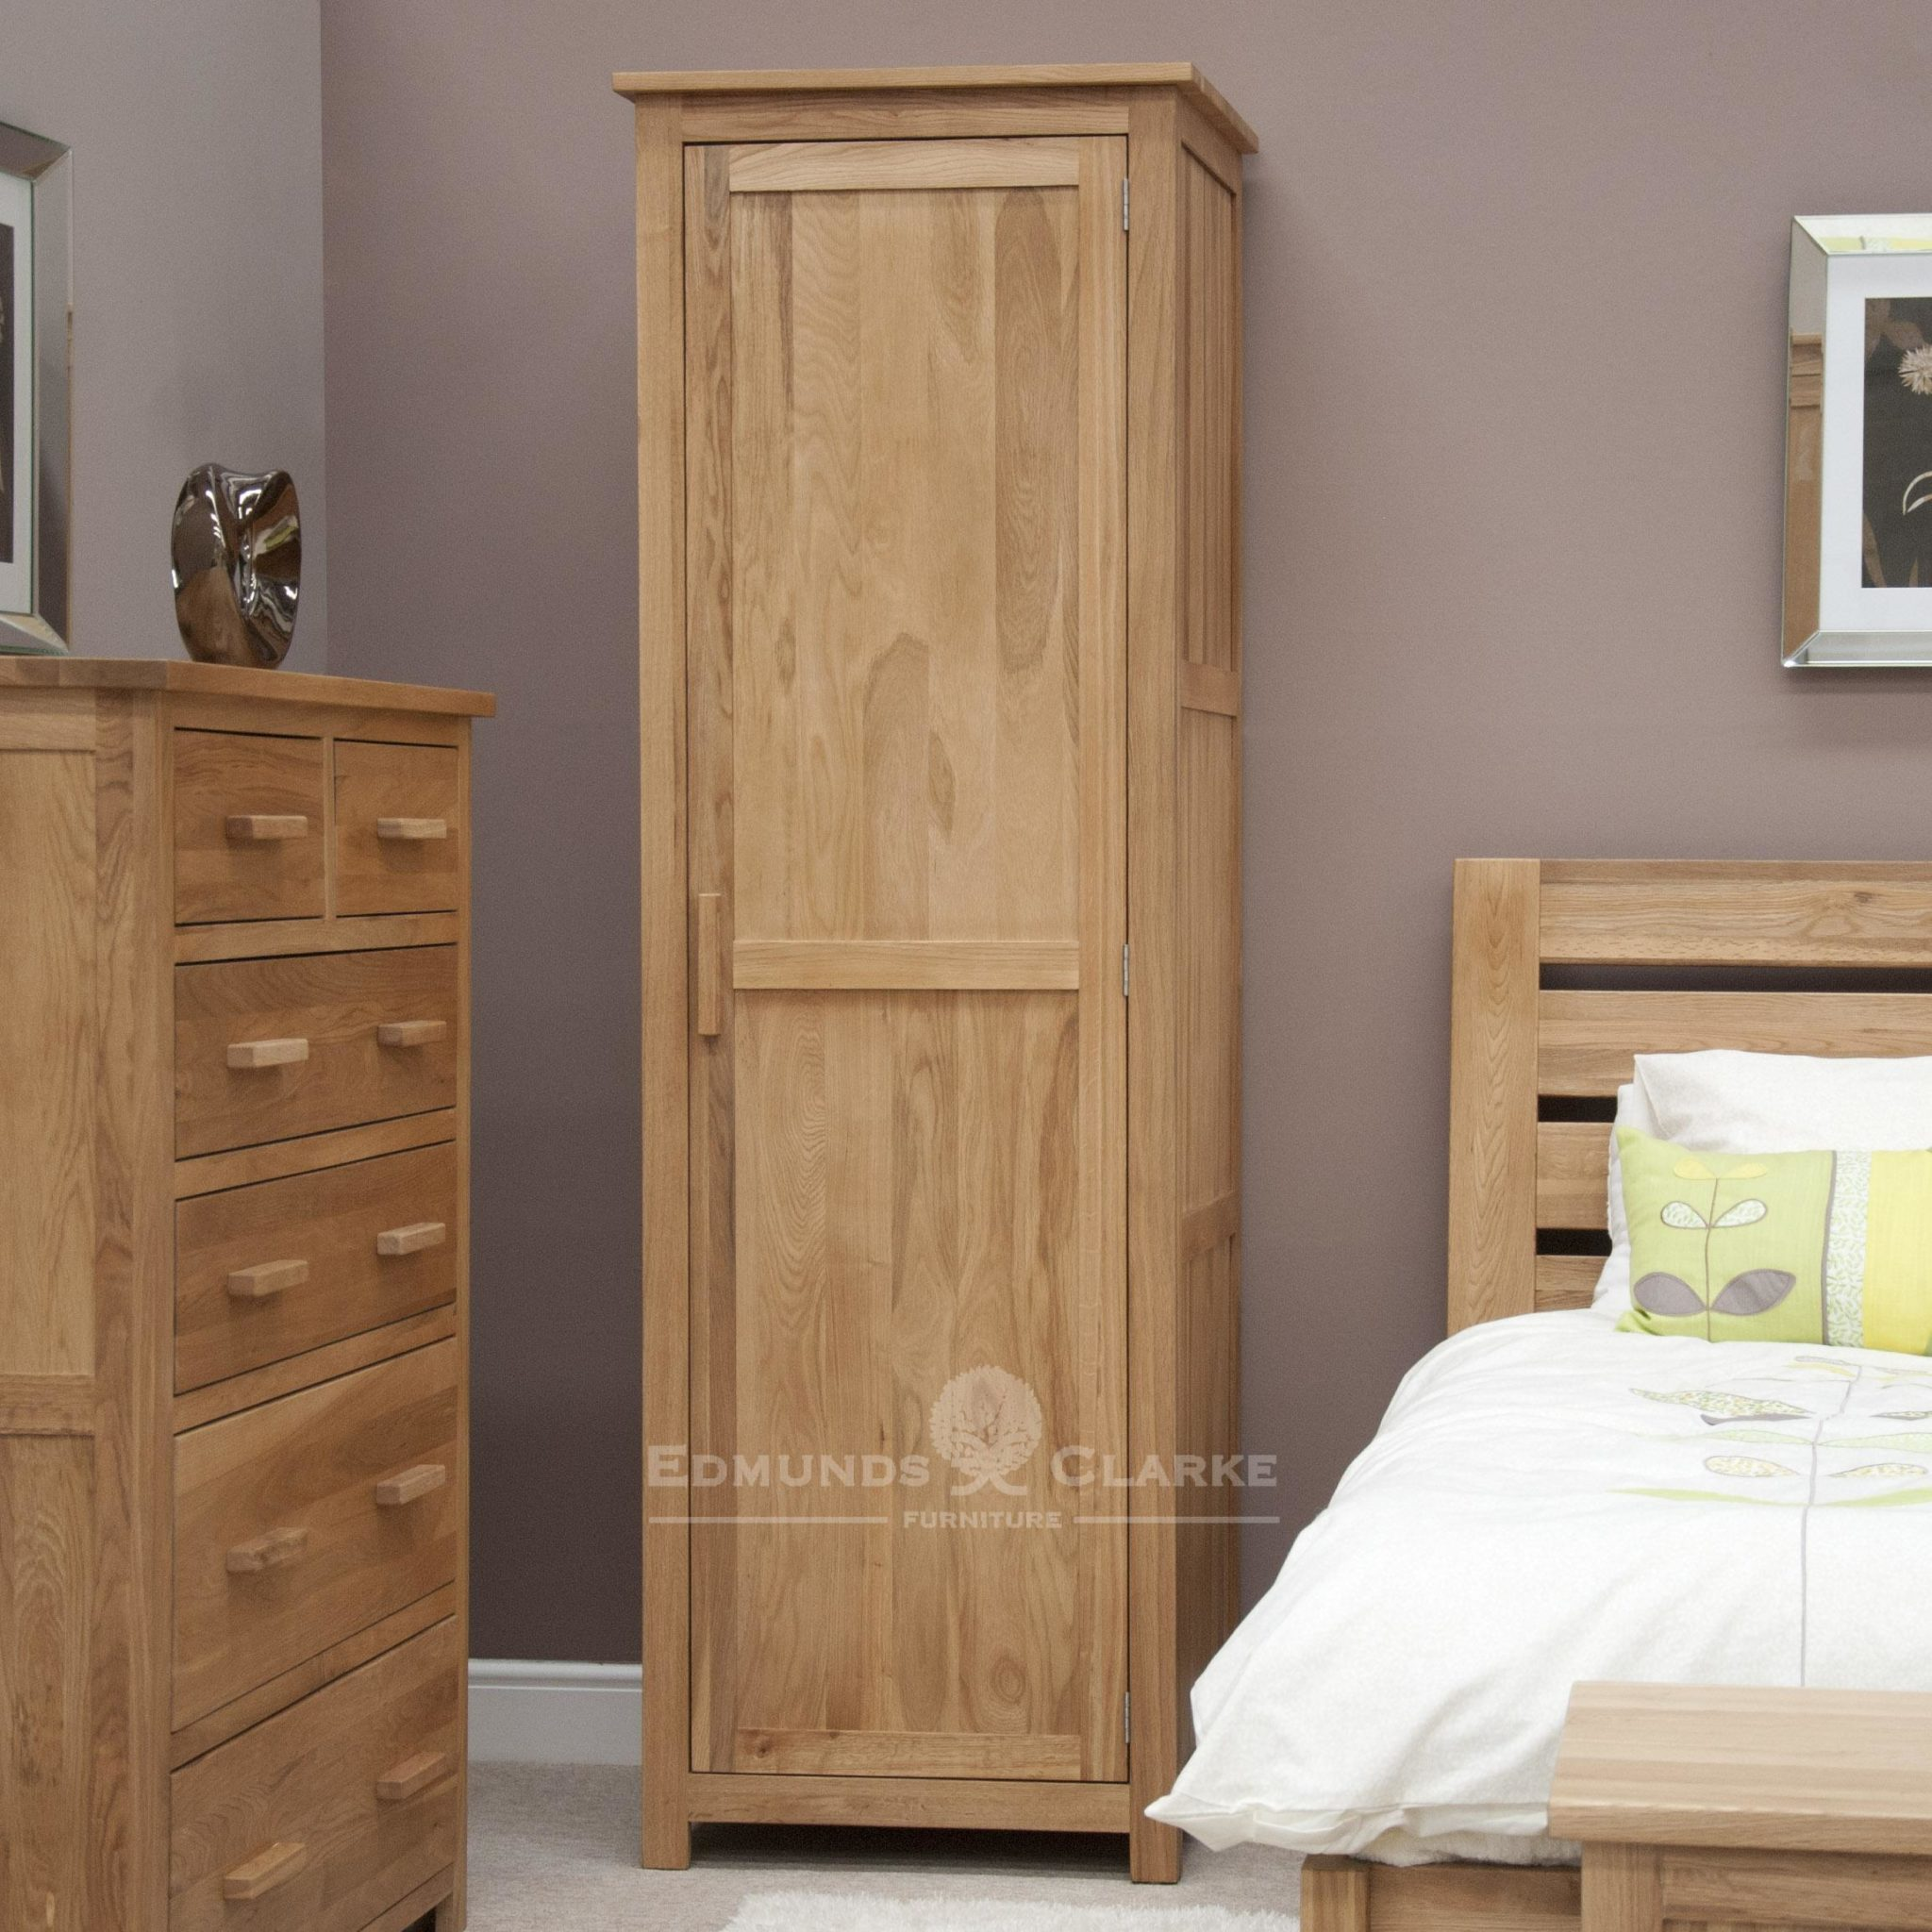 Bury Solid Oak Single Slim Wardrobe. full hanging, light lacquer finish and choice of wood or metal handle